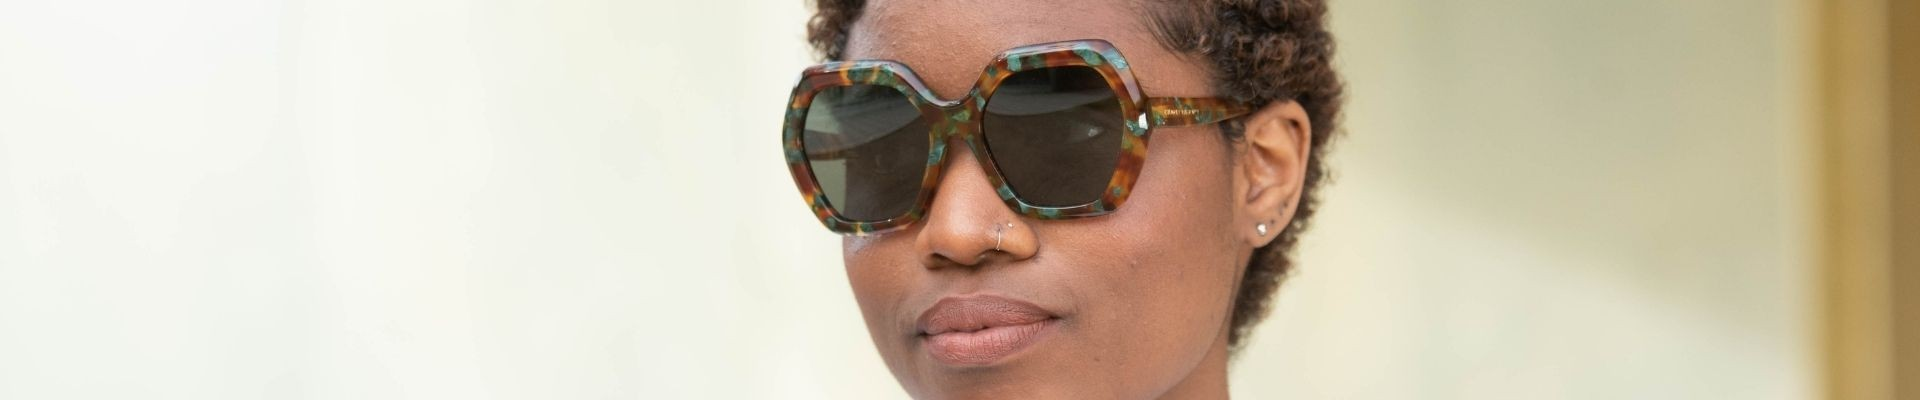 Lunettes de soleil Charly Therapy Studio